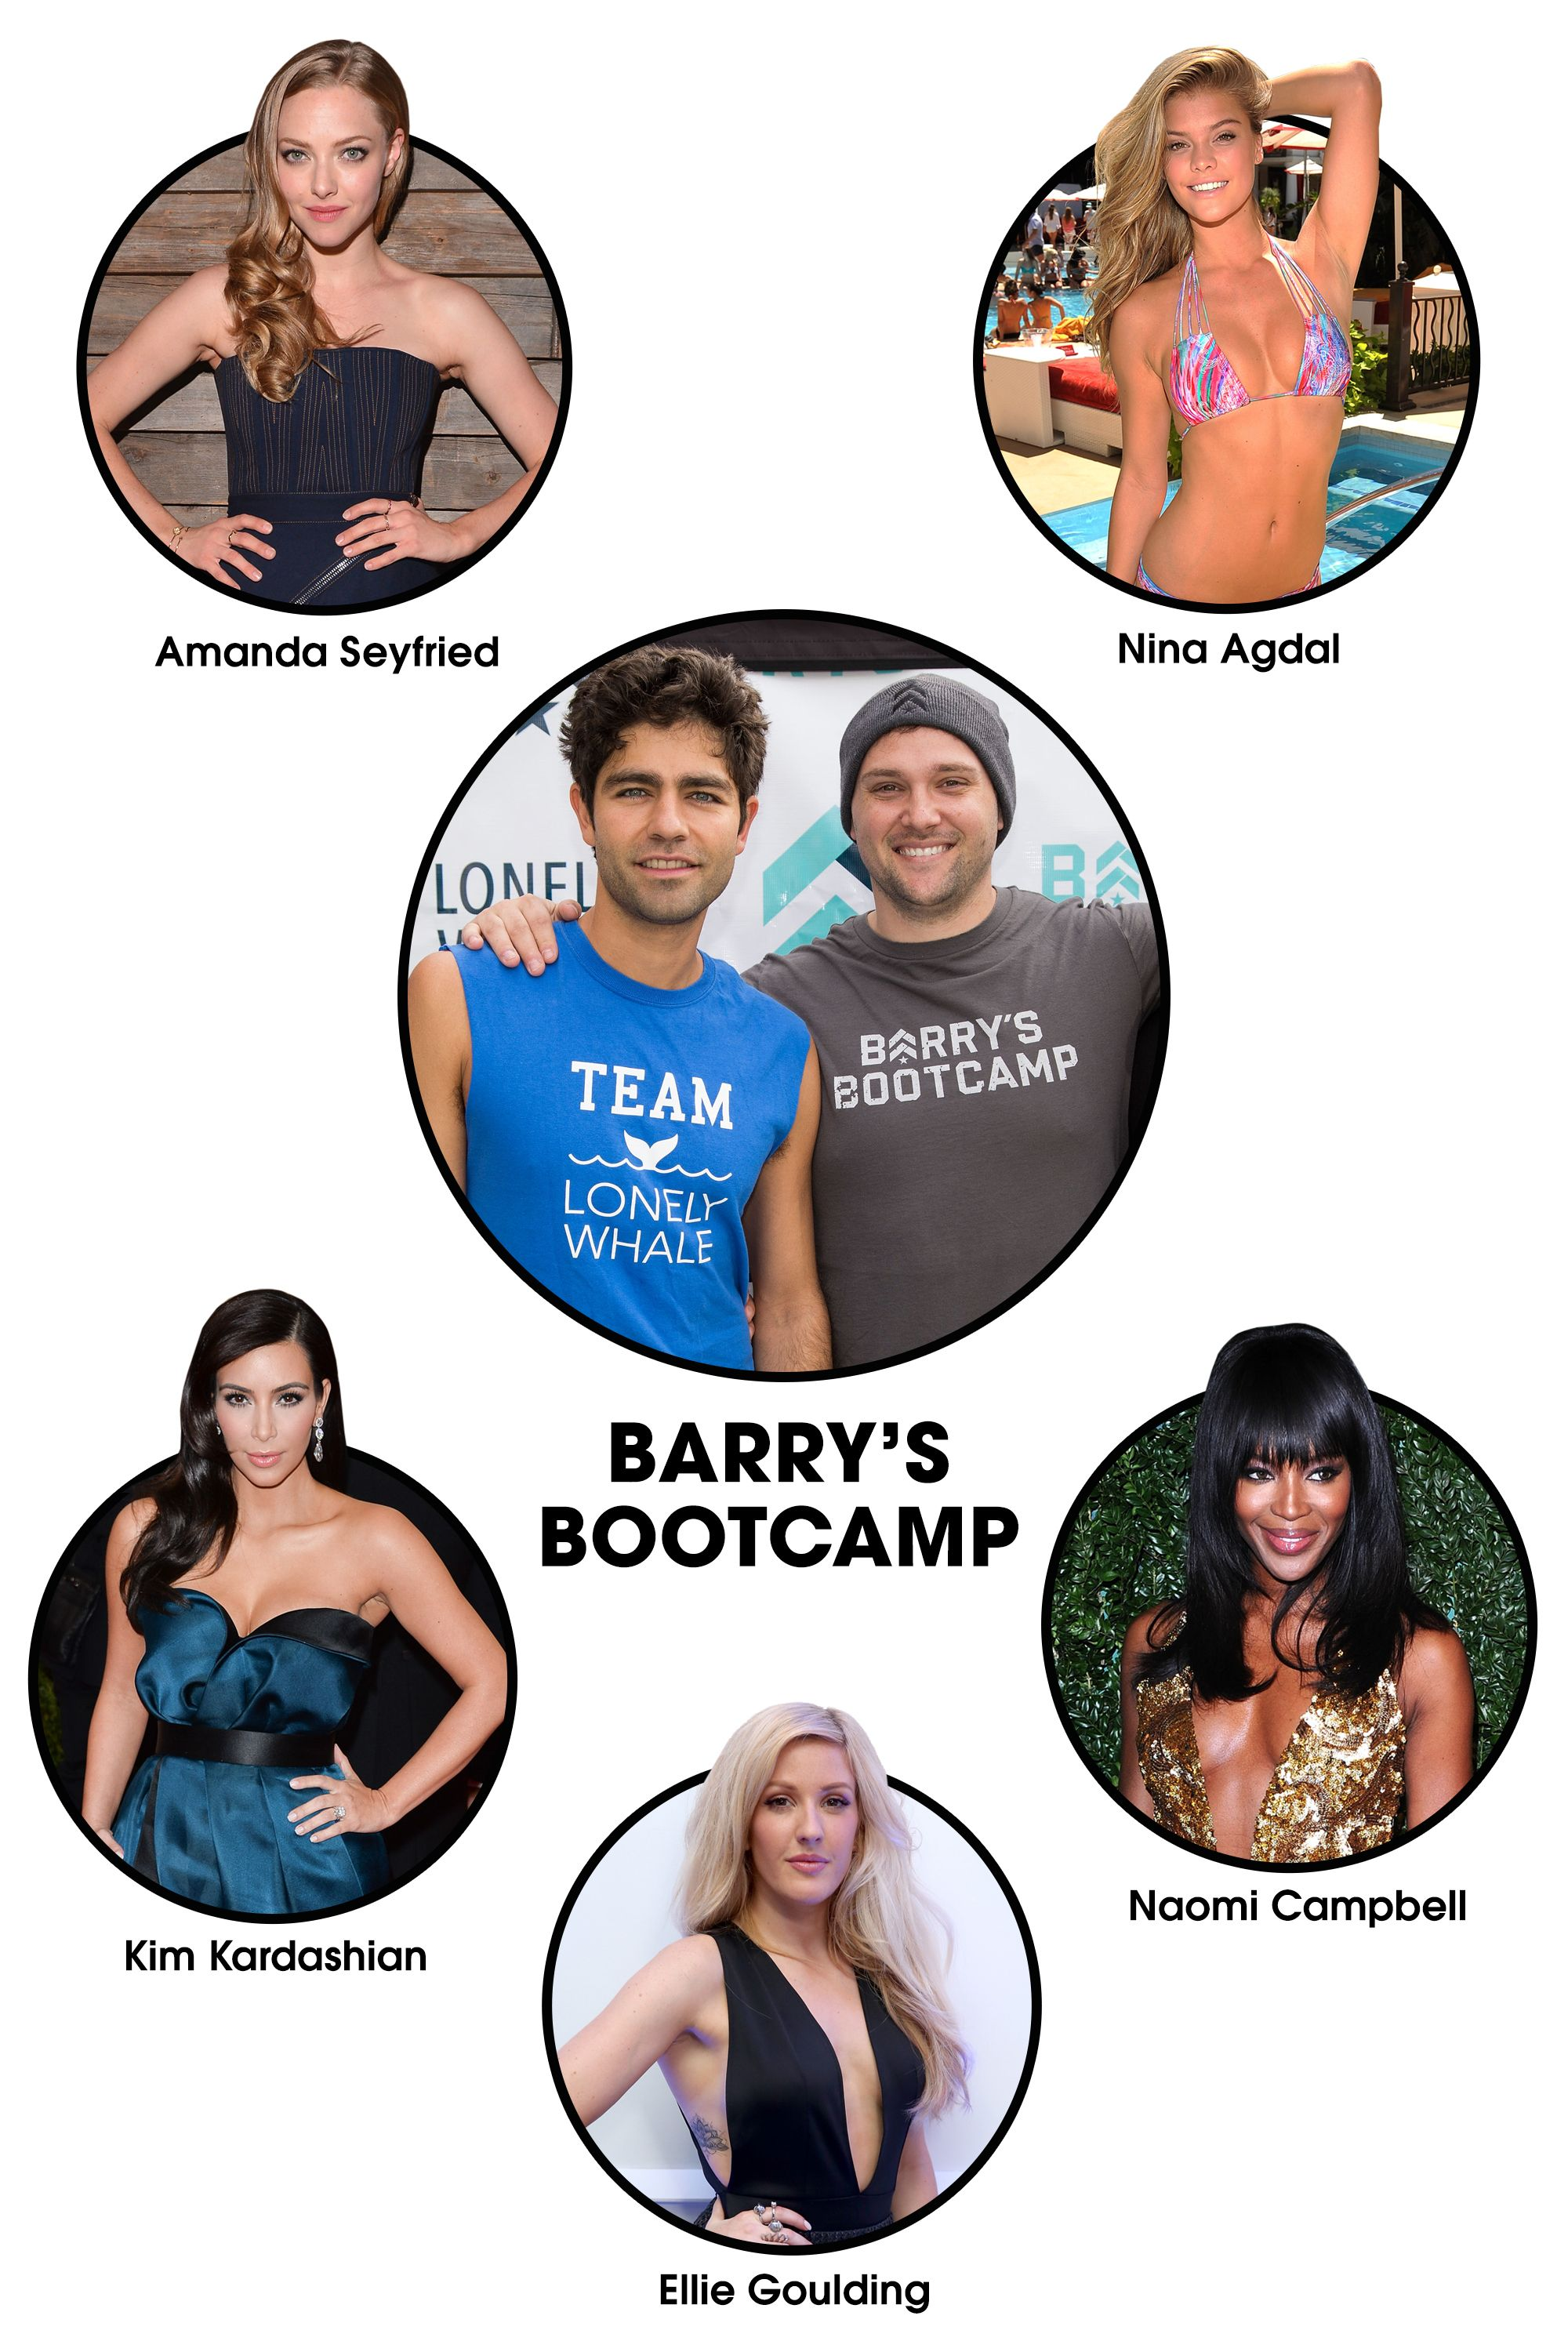 "<strong>The workout: </strong>It's definitely gotten some airtime on <em>Keeping Up with the Kardashians</em>, but Kim et al aren't the only ones who head to <a target=""_blank"" href=""https://www.barrysbootcamp.com/"">Barry's</a> for an intense, bootcamp-style workout. Naomi Campbell frequently tweets about the butt-kicking workouts, and Ellie Goulding and Adrian Grenier are so committed, they've both <a target=""_blank"" href=""http://www.dailymail.co.uk/tvshowbiz/article-2898753/So-s-does-Ellie-Goulding-reveals-toned-abs-Barry-s-Bootcamp-class-showing-bikini-body-beach-Miami-holiday.html"">led classes</a>.  <strong>Celeb devotees: </strong>Amanda Seyfried, Nina Agdal, Naomi Campbell, Adrian Grenier, Kim Kardashian, Ellie Goulding, Khloe Kardashian, Kourtney Kardashian, Jessica Biel, Sandra Bullock, Alicia Silverstone"